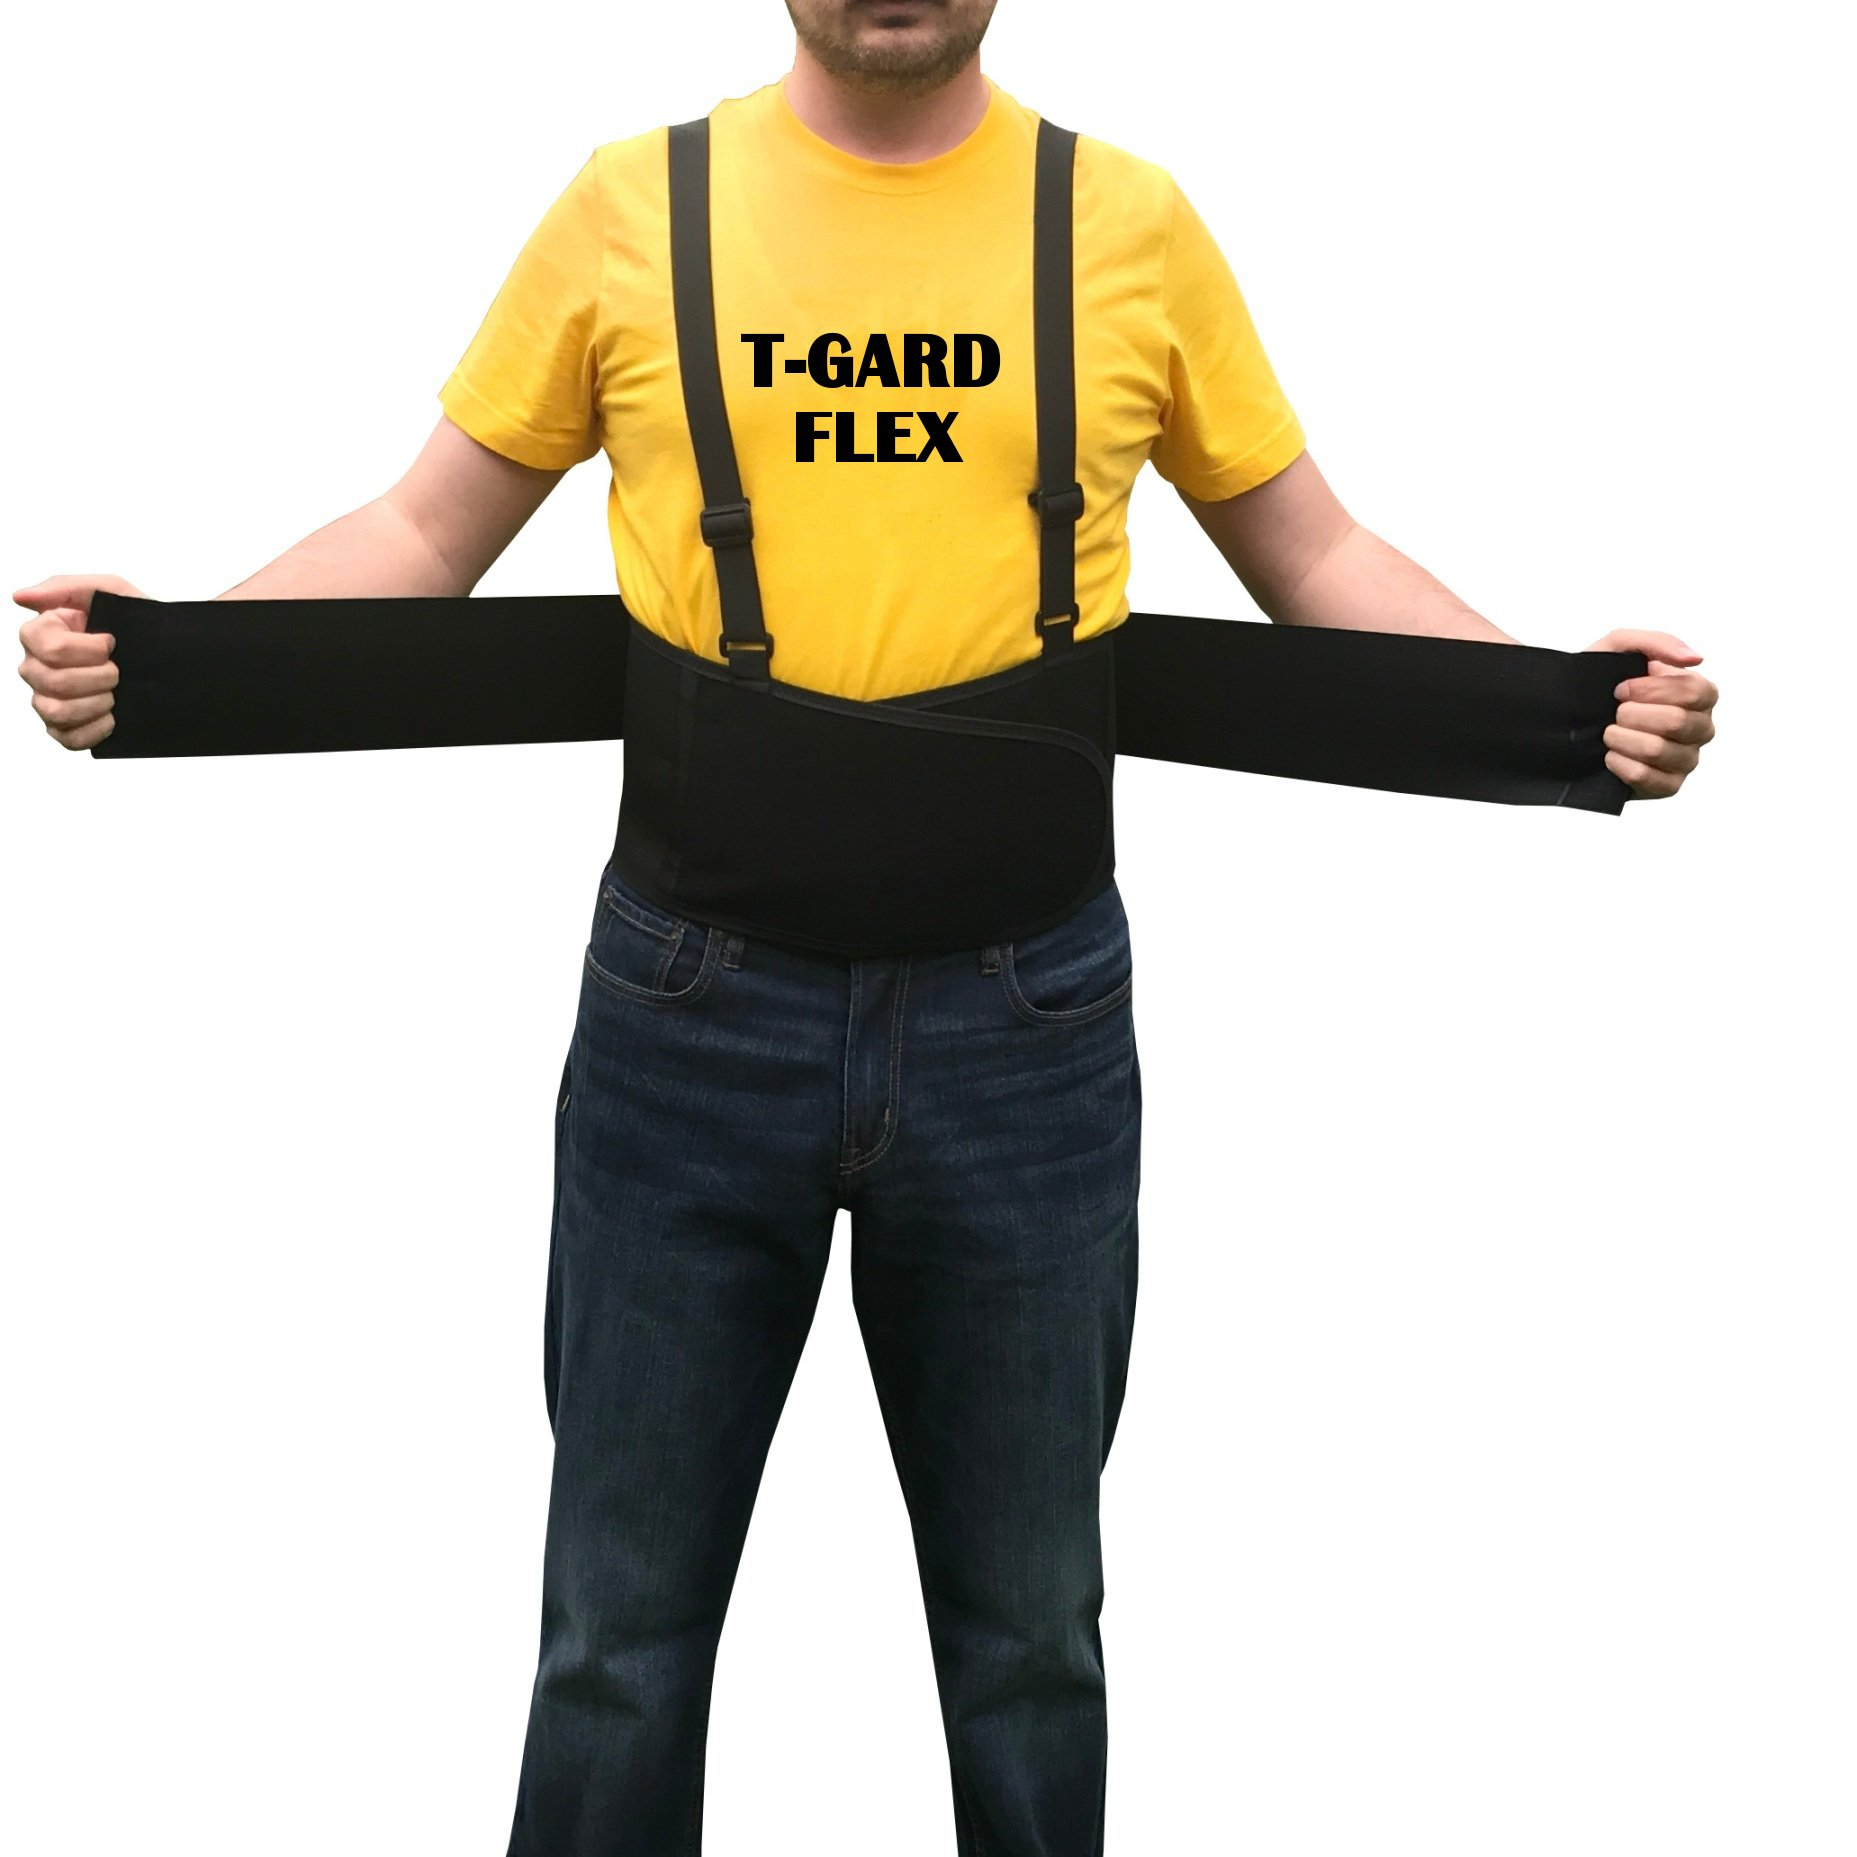 T-GARD FLEX Elastic Back Support Belt With Suspenders, Back Brace, Lower Back Support Belt For Men and Women (Available in Small,Medium,L, 2X, 3X) Extra Wide With Proper Back Support, Black (2X-Large)